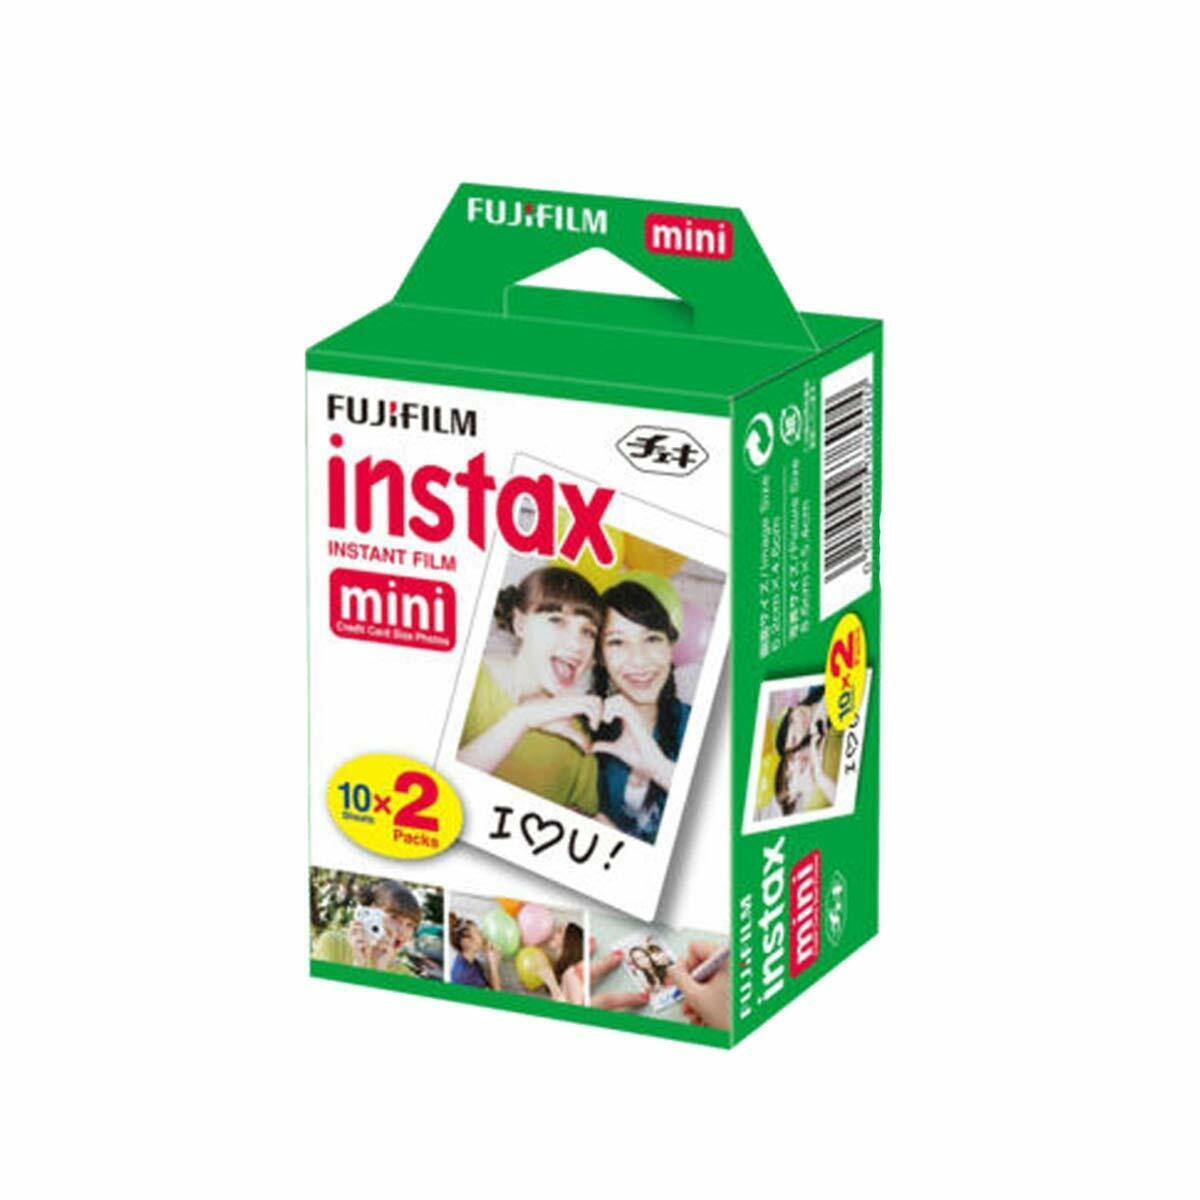 Fujifilm INSTAX Mini Instant Film 2 Pack = 20 Sheets  for Fu